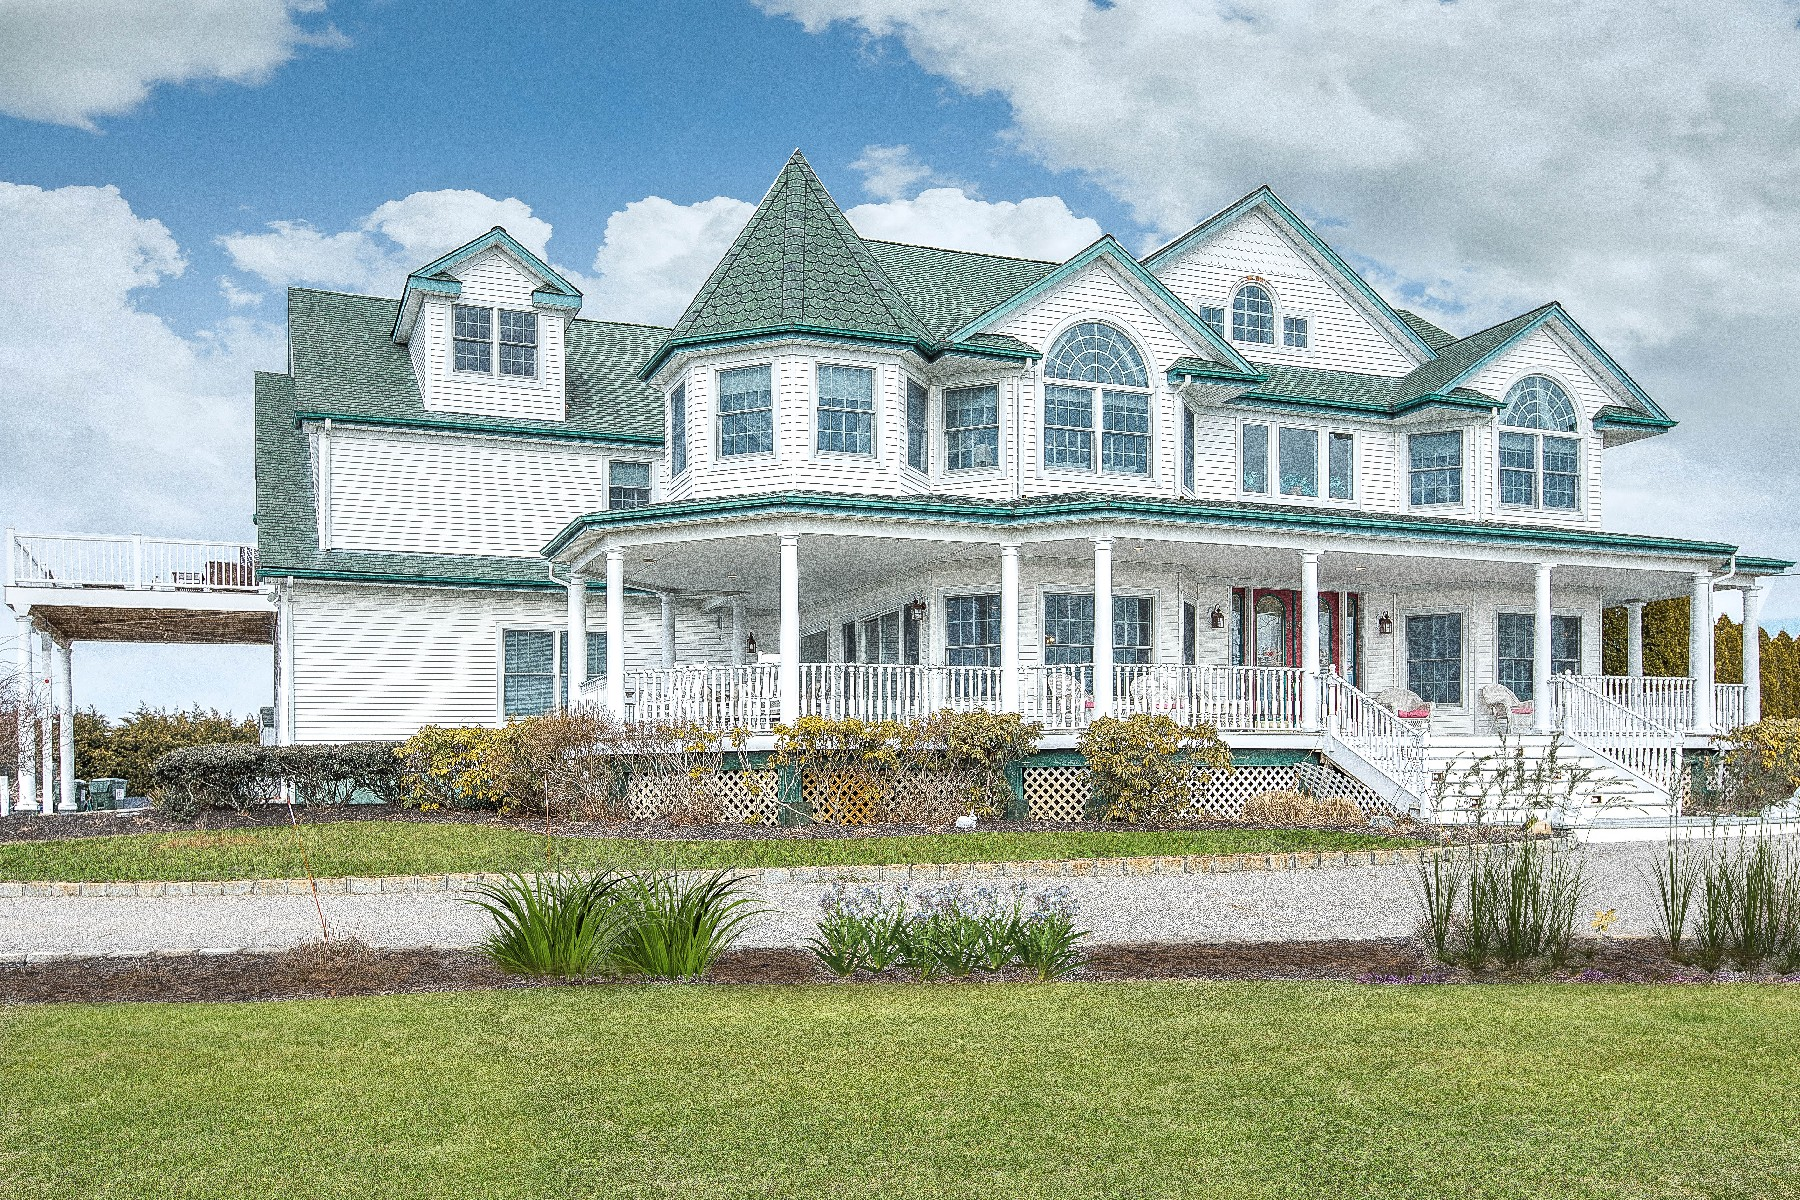 Single Family Homes for Active at Eastport 57 S Bay Ave Eastport, New York 11941 United States